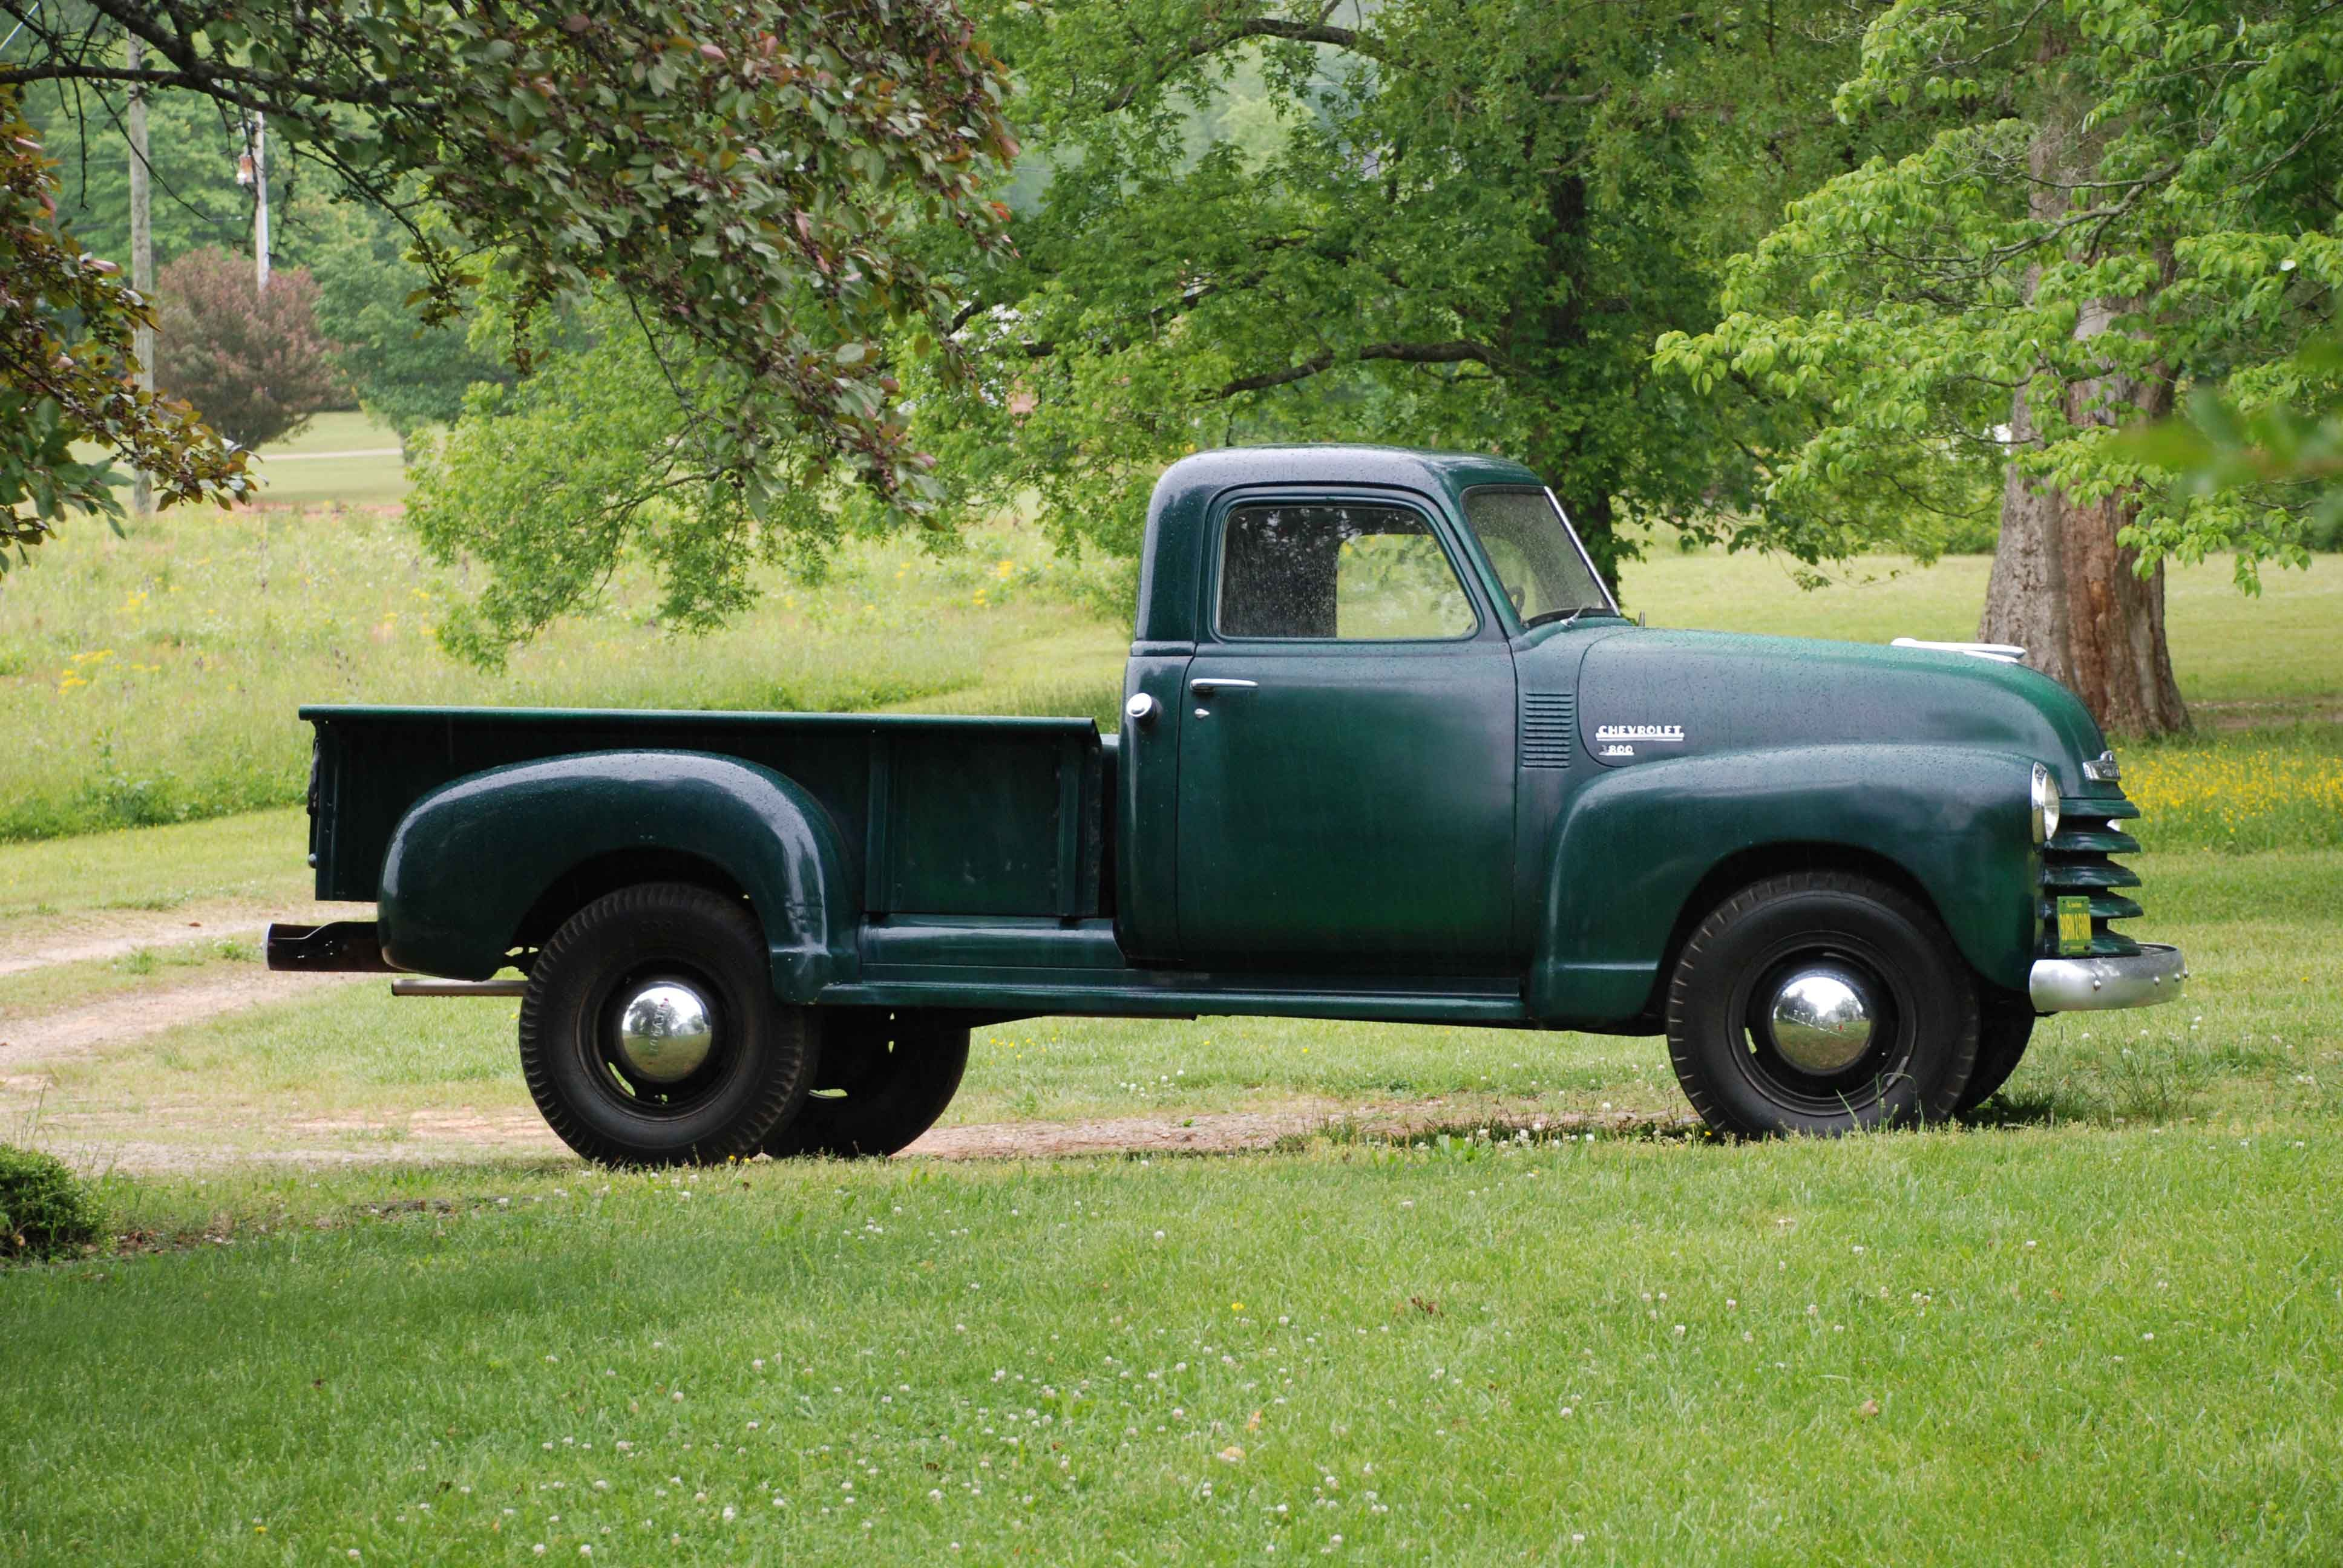 1951 Chevy | Pickups on parade | Pinterest | Chevrolet, 54 chevy ...